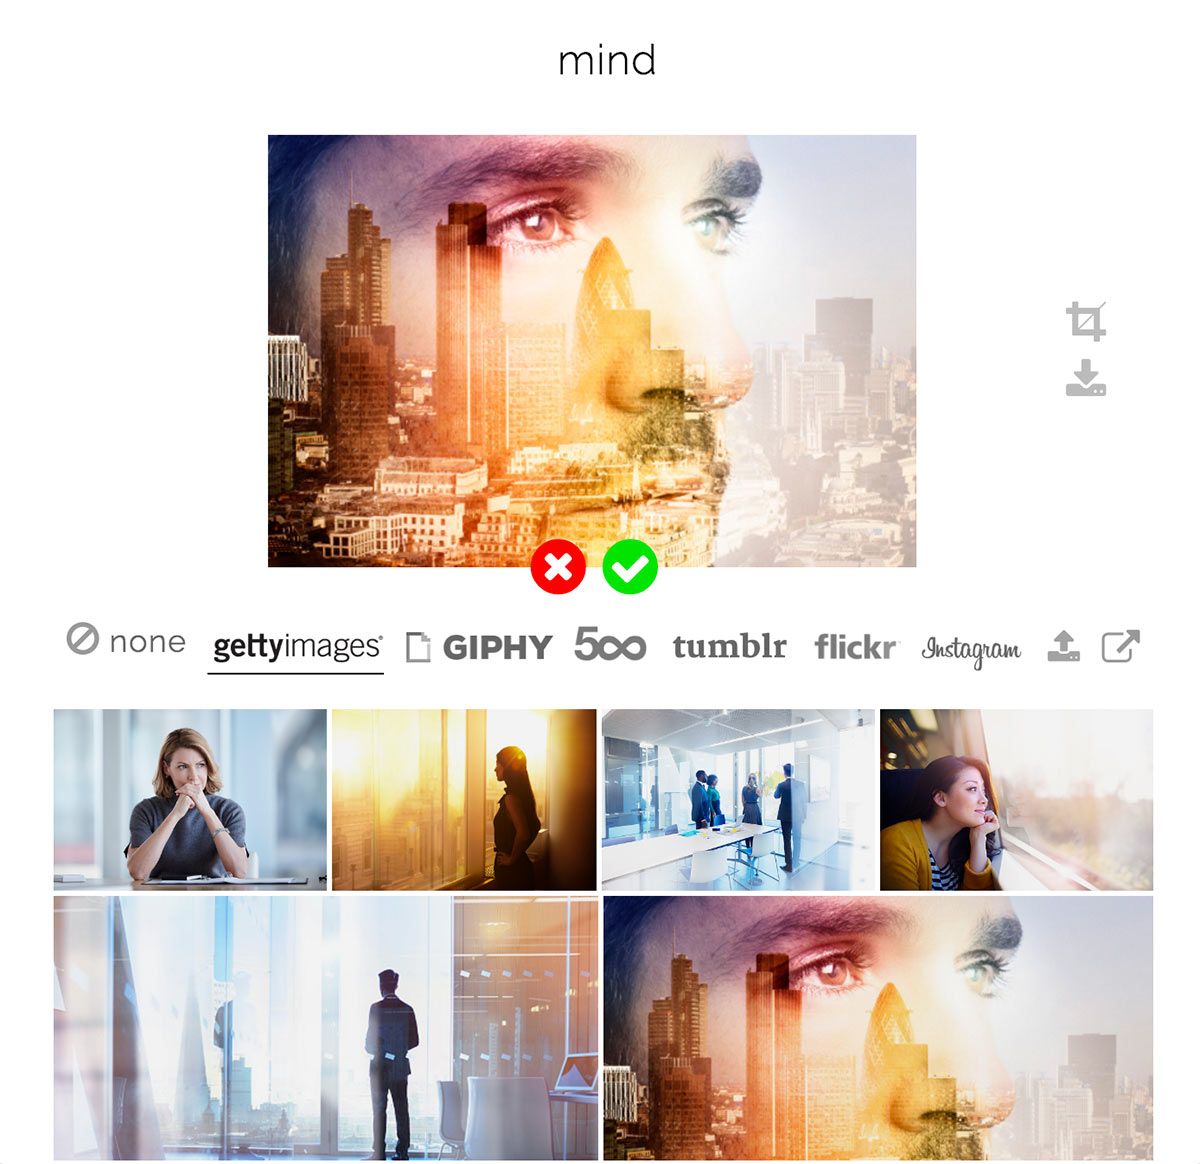 Pop up window allowing you to browse for image inspiration.